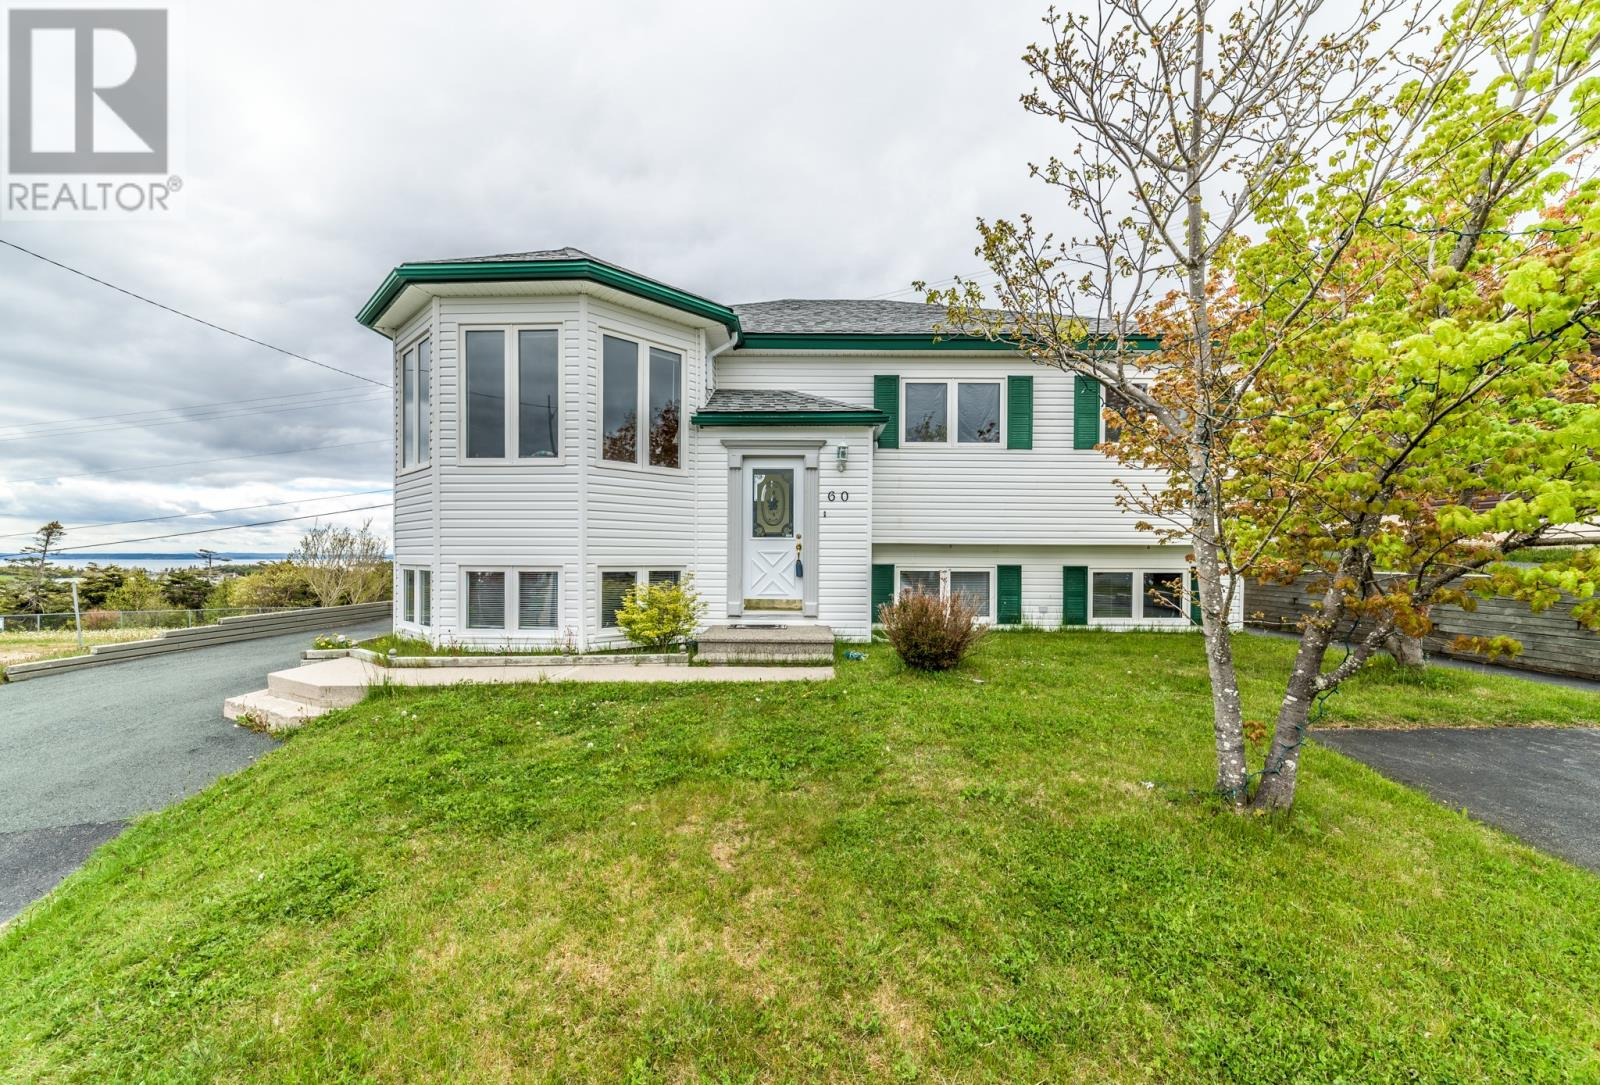 Removed: 60 Sparrow Drive, Conception Bay South, NL - Removed on 2018-06-27 07:12:30